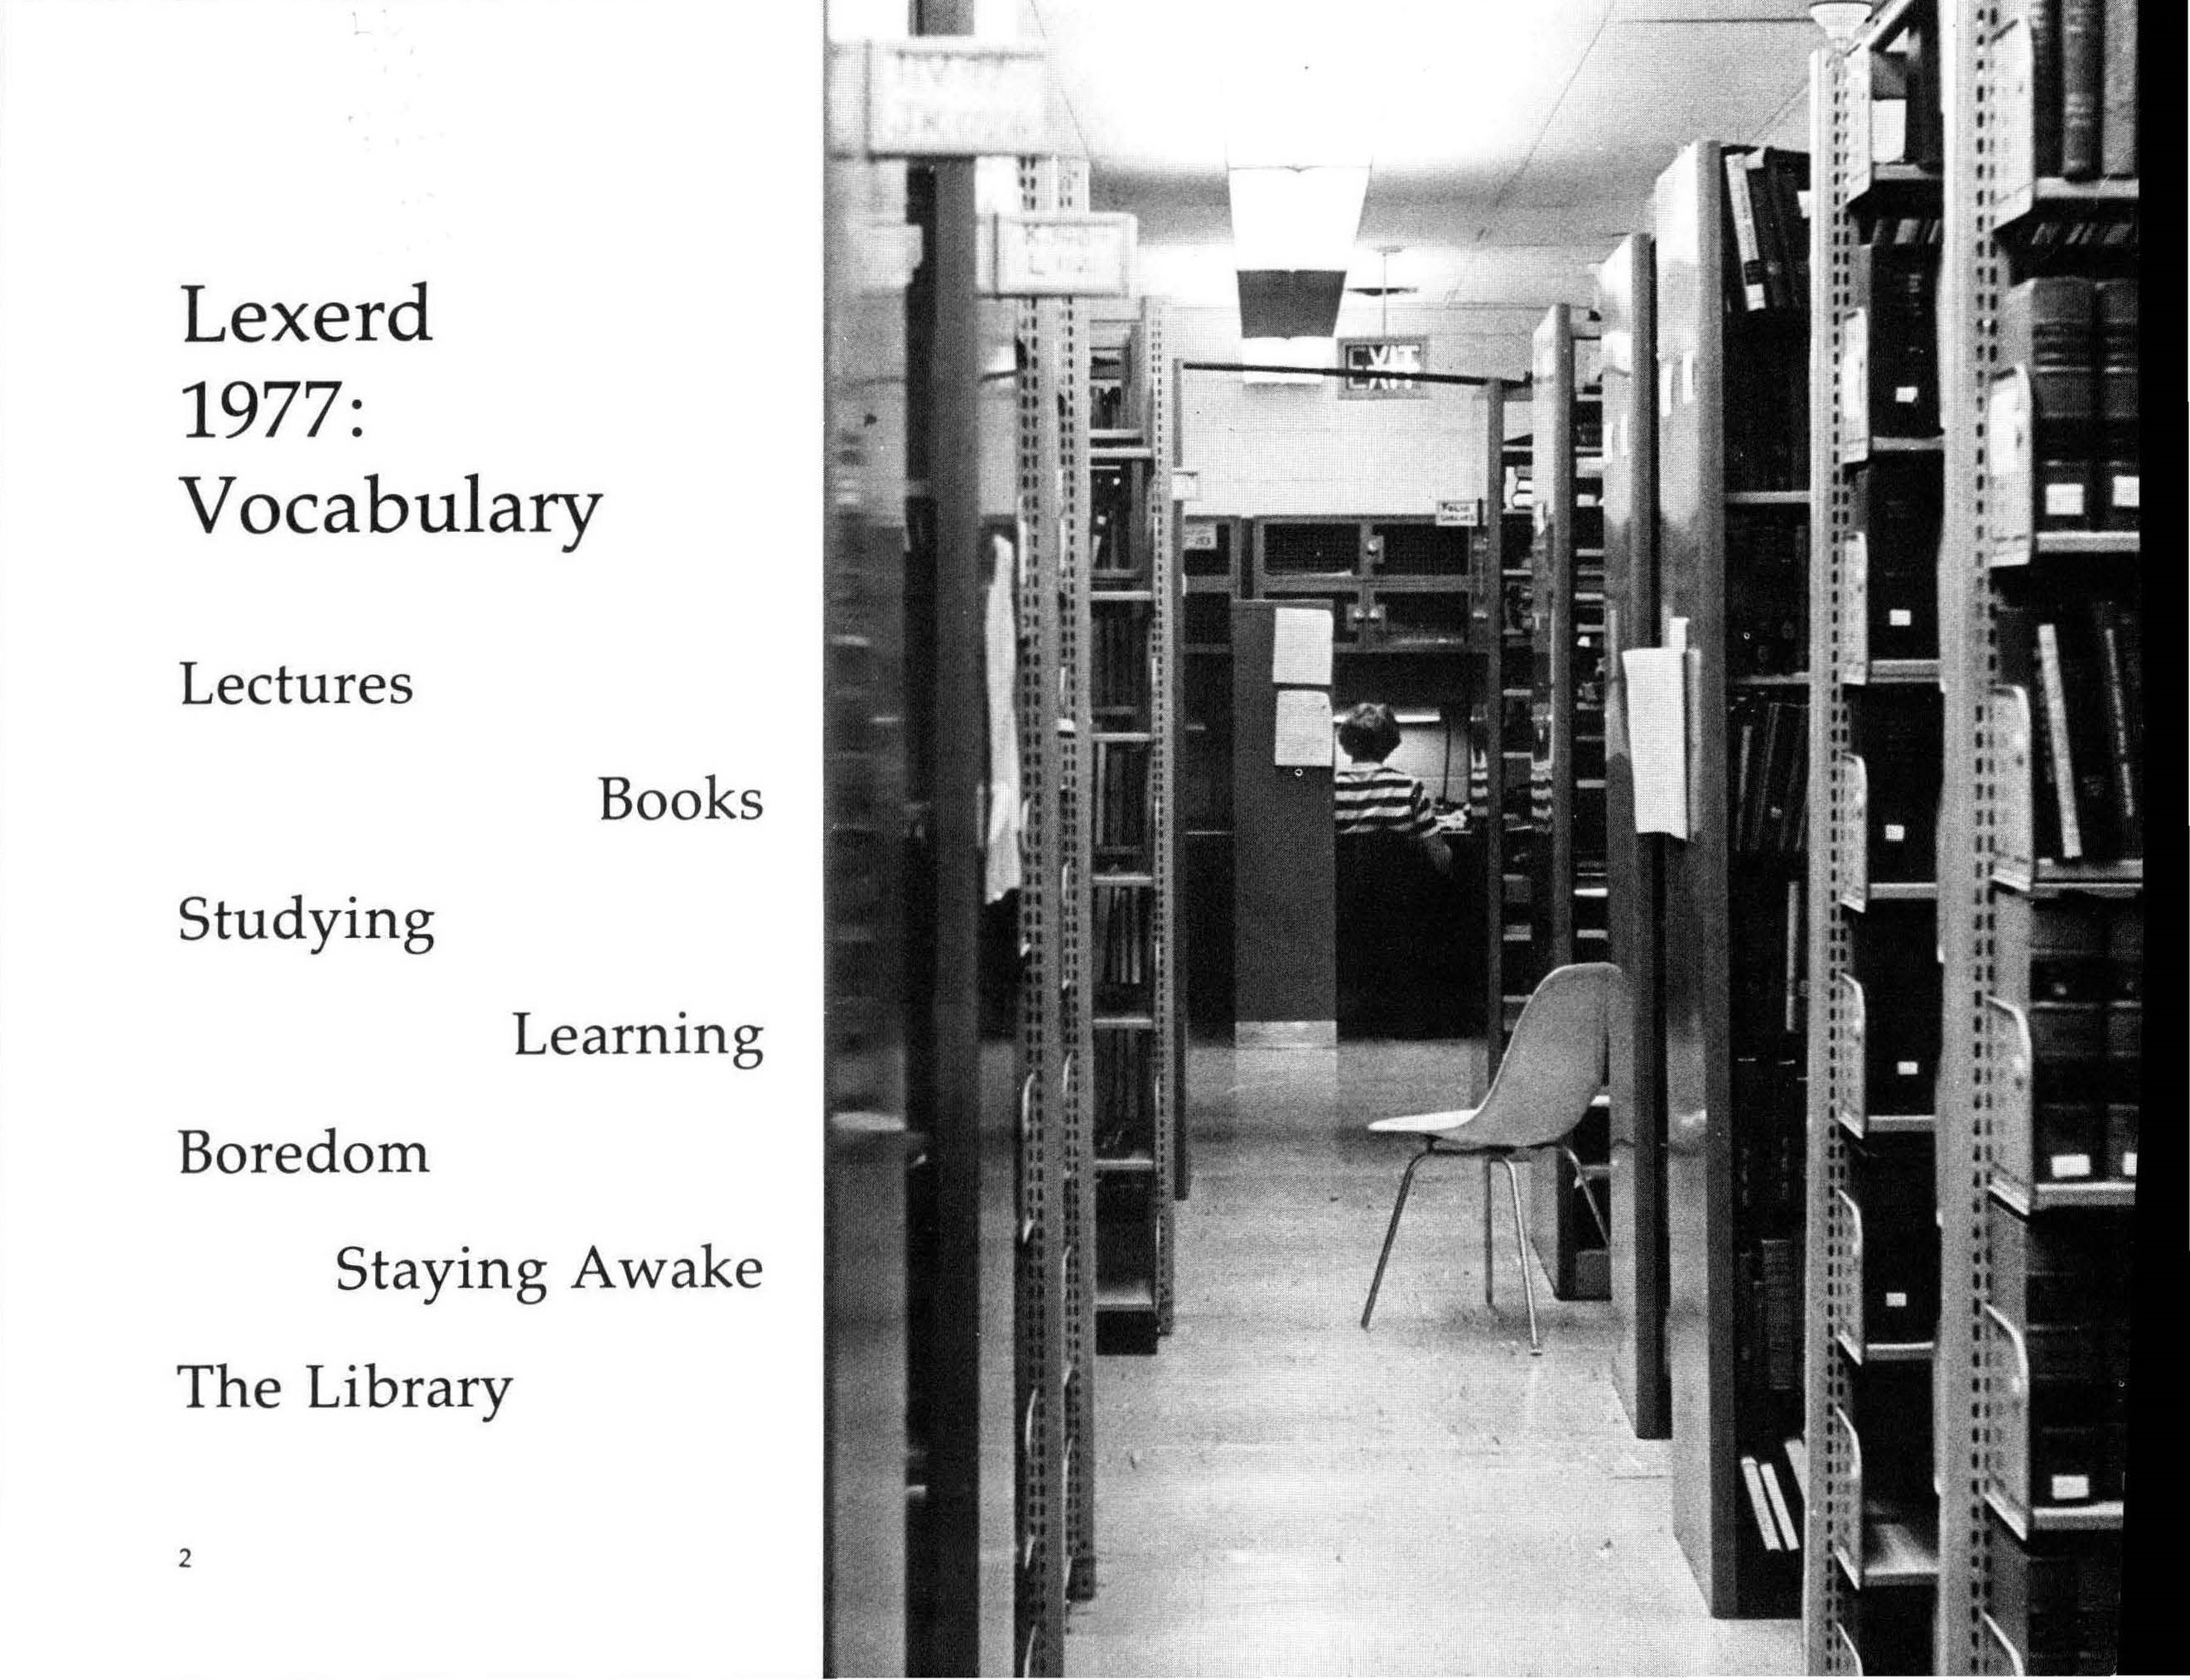 The library stacks